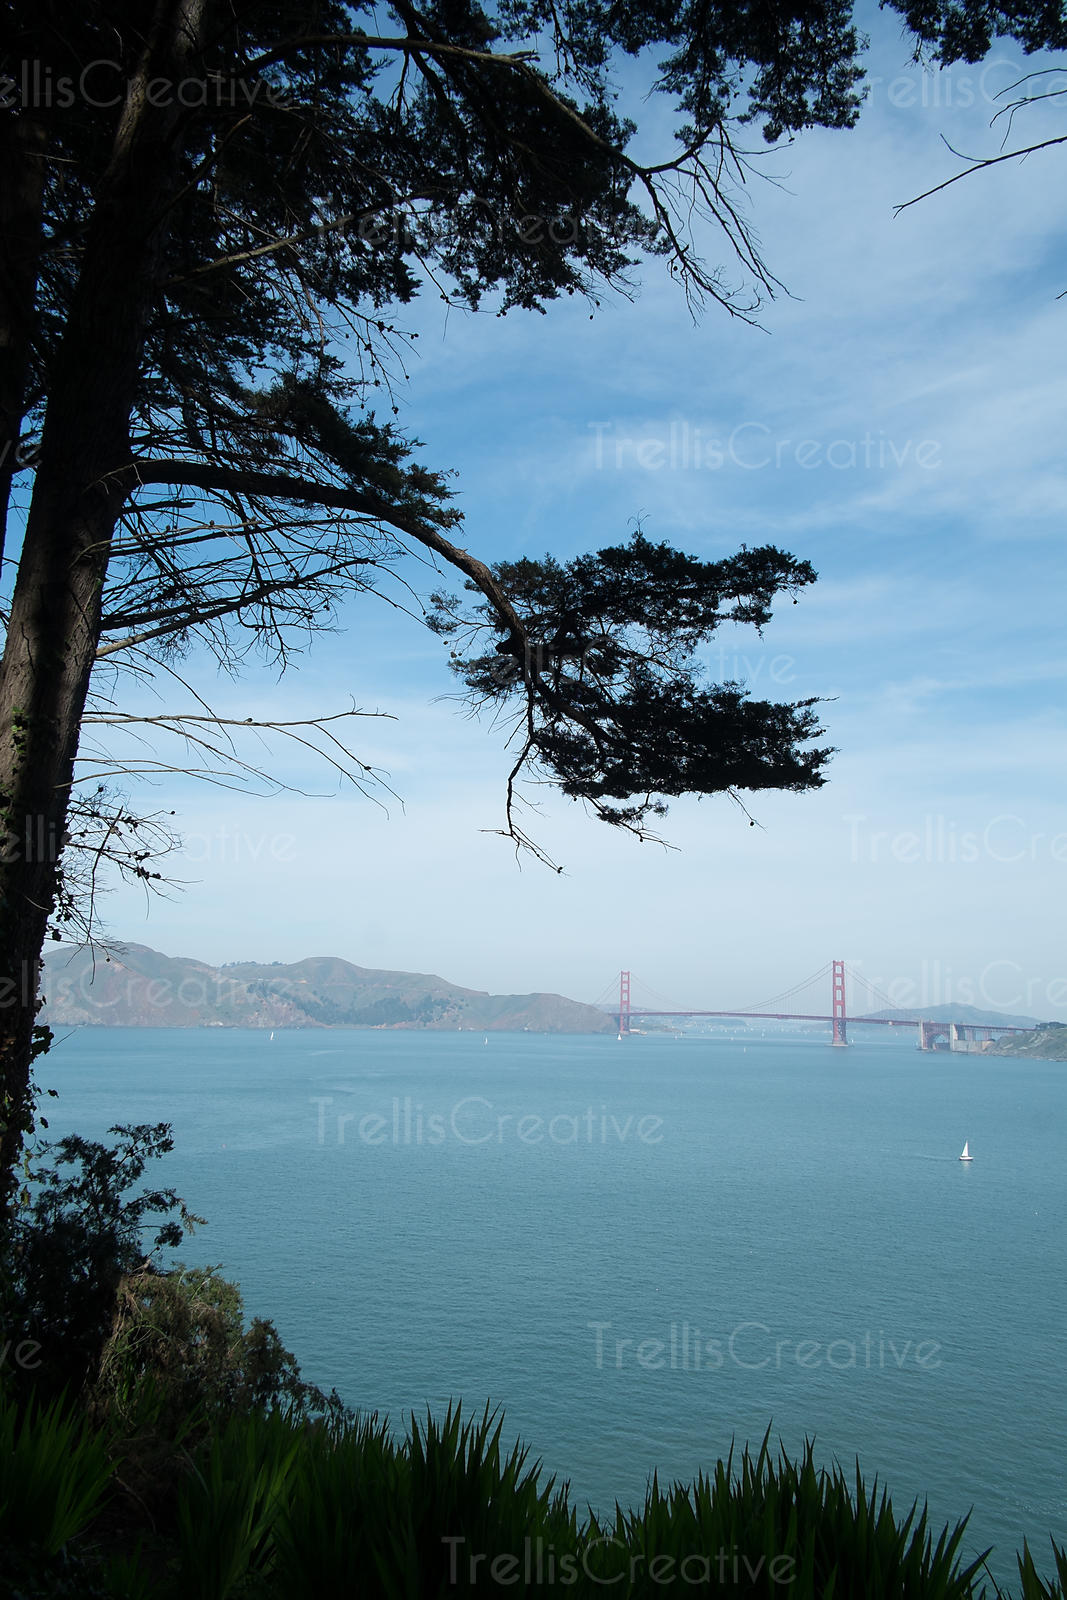 Distant view of the Golden Gate bridge with San Francisco Bay in the foreground